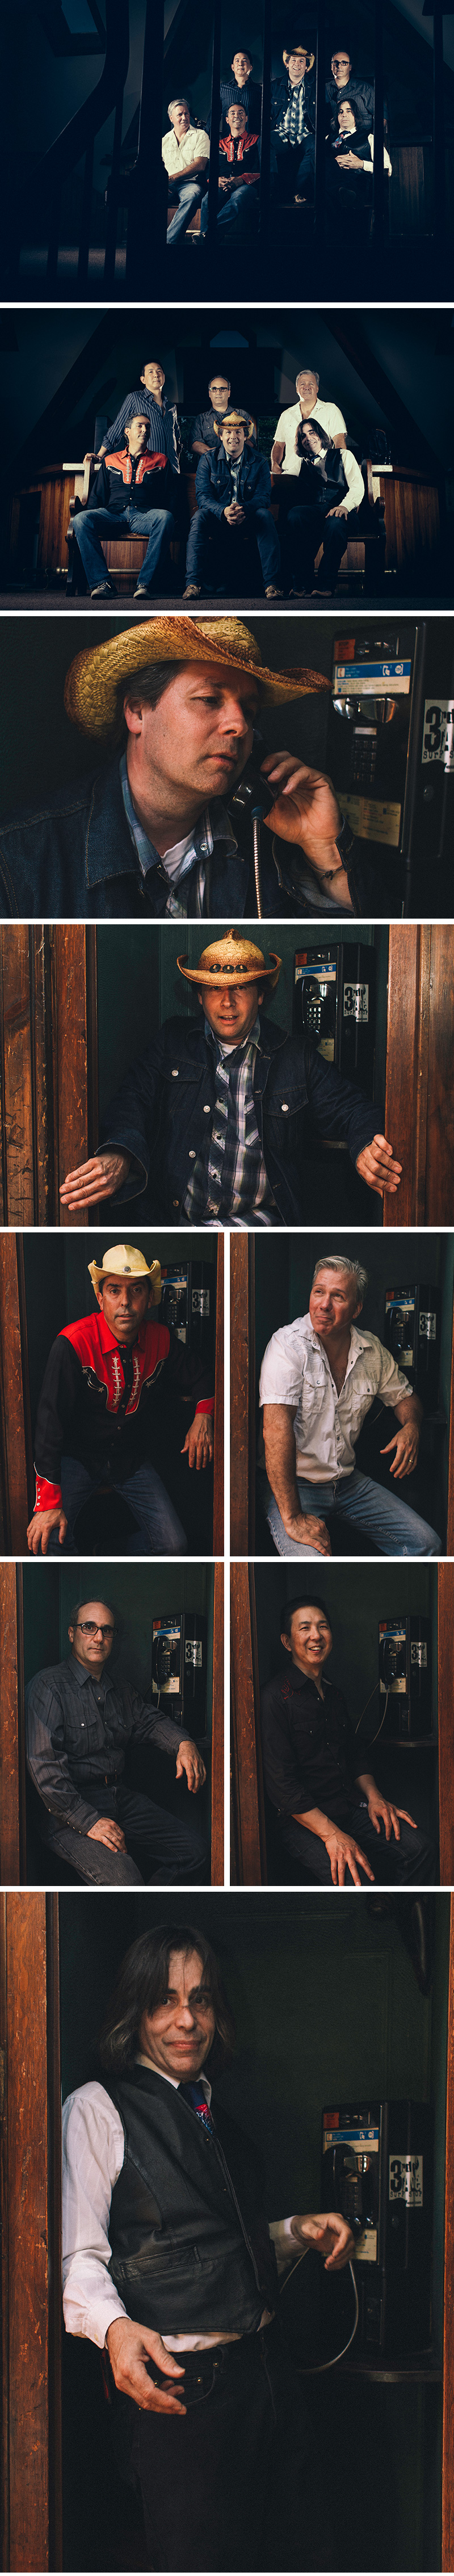 Brian Clayton and the Green River Brand promo photos